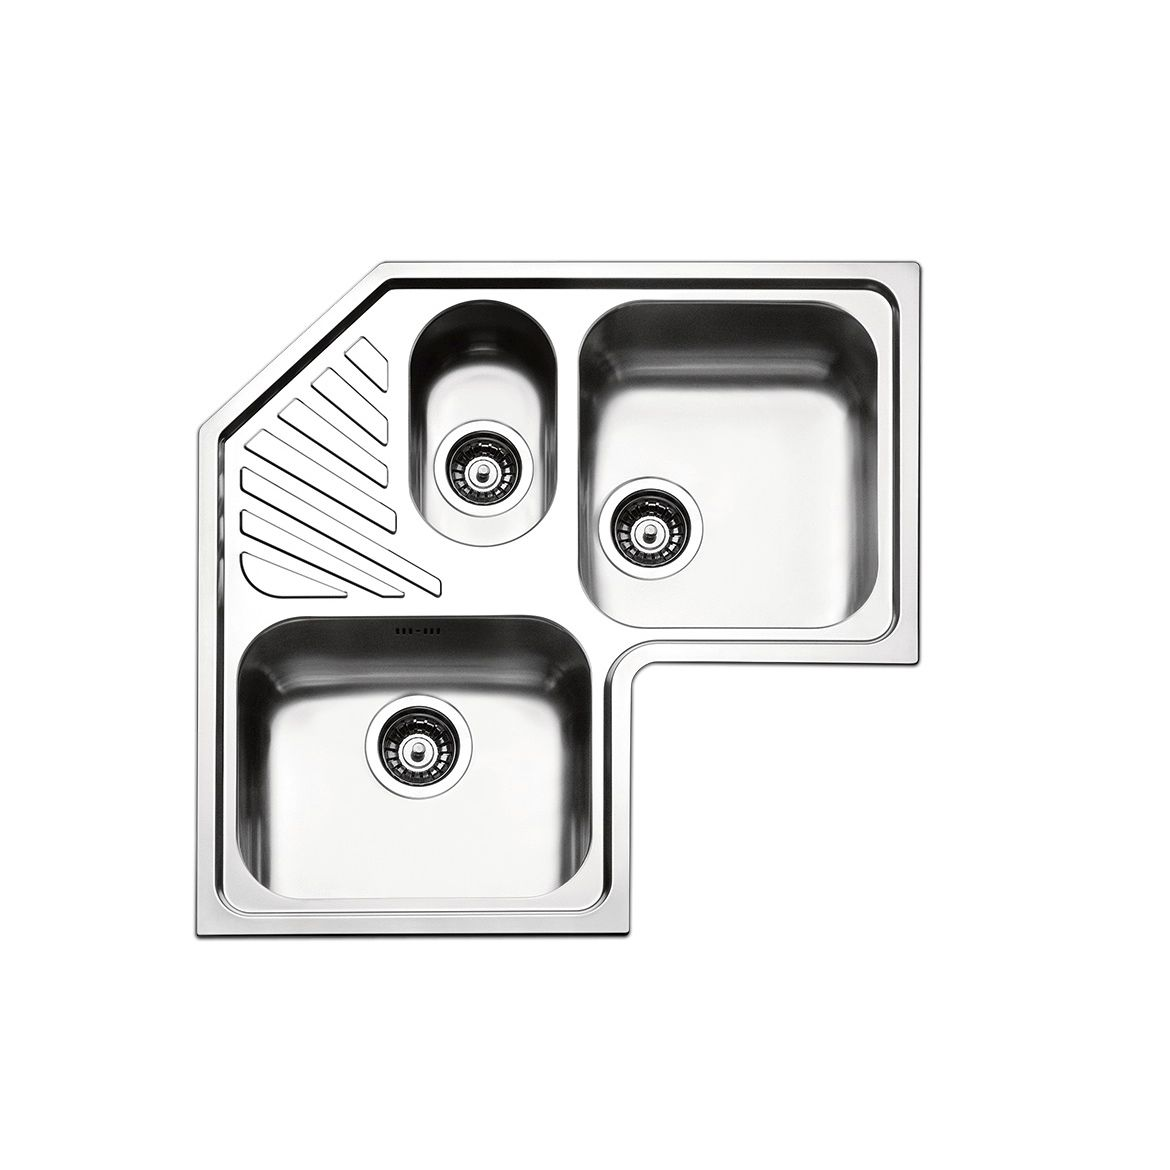 Triple Bowl Kitchen Sinks Triple bowl kitchen sink stainless steel corner with triple bowl kitchen sink stainless steel corner with drainboard angolo roan3i workwithnaturefo